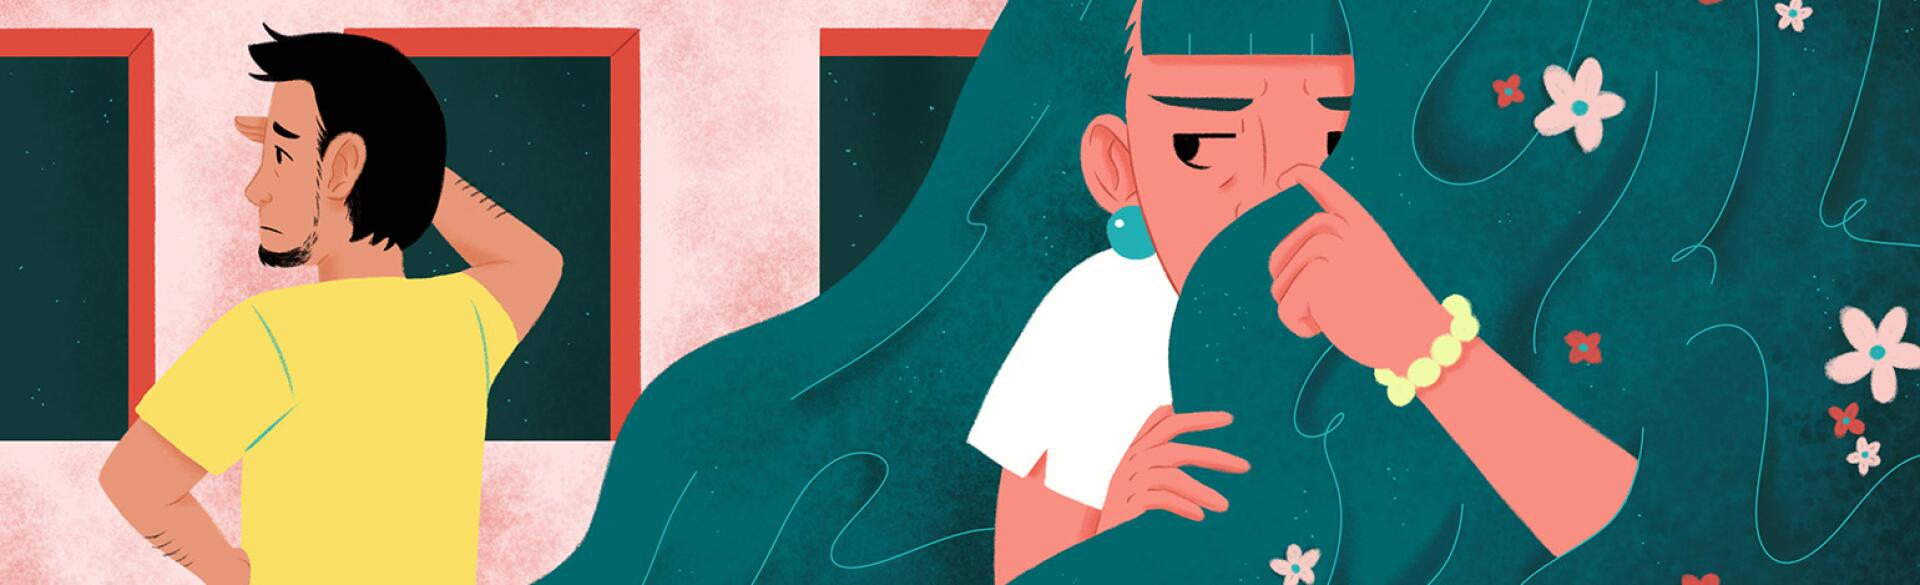 An illustration of a woman ducking behind her own hair to avoid her ex, who is searching for her.